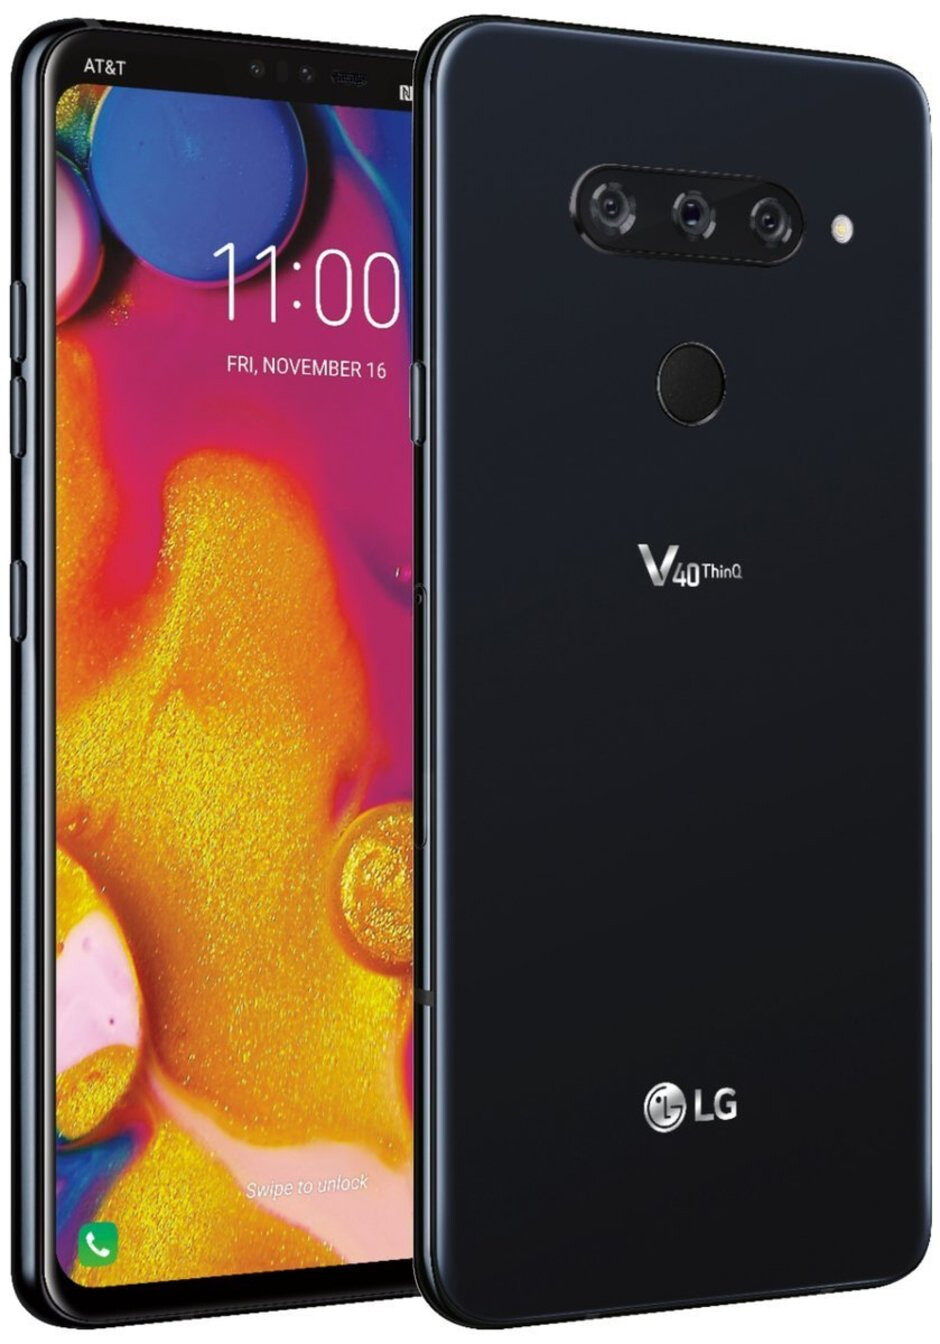 The LG V40 for AT&T - LG V40 ThinQ rumor review: specs and release of LG's 4th flagship for the year